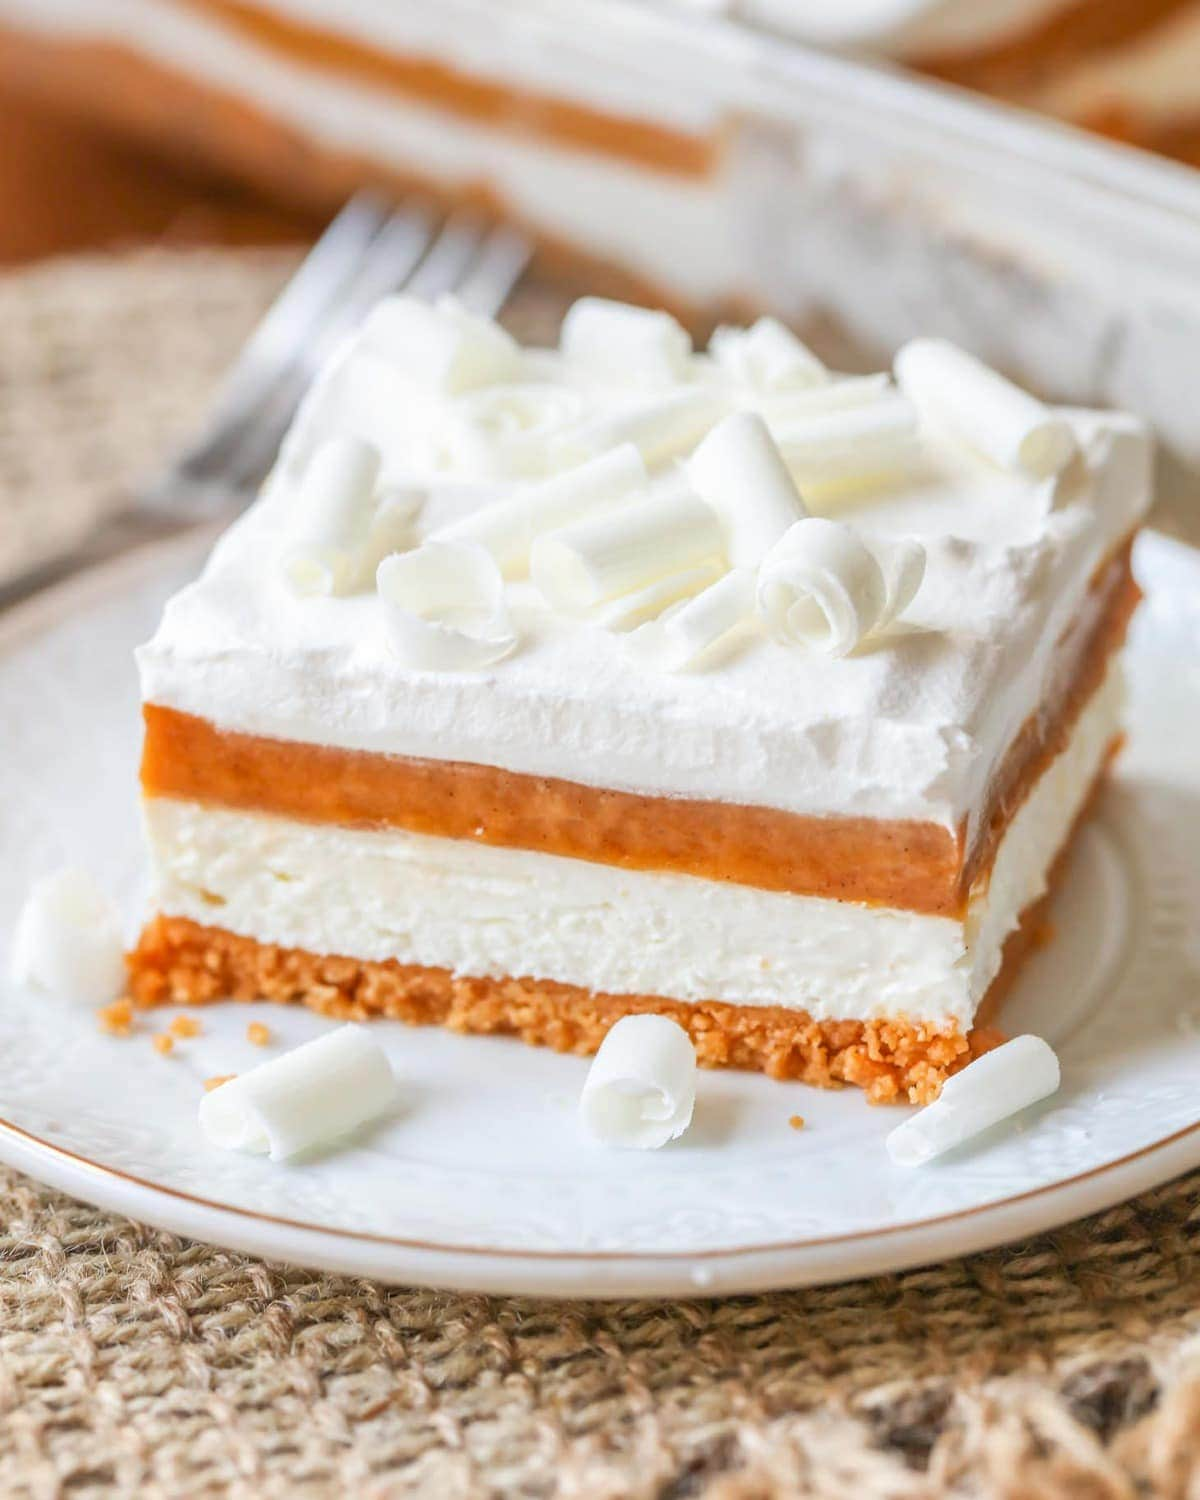 Pumpkin Lasagna Dessert topped with white chocolate curls on a white plate